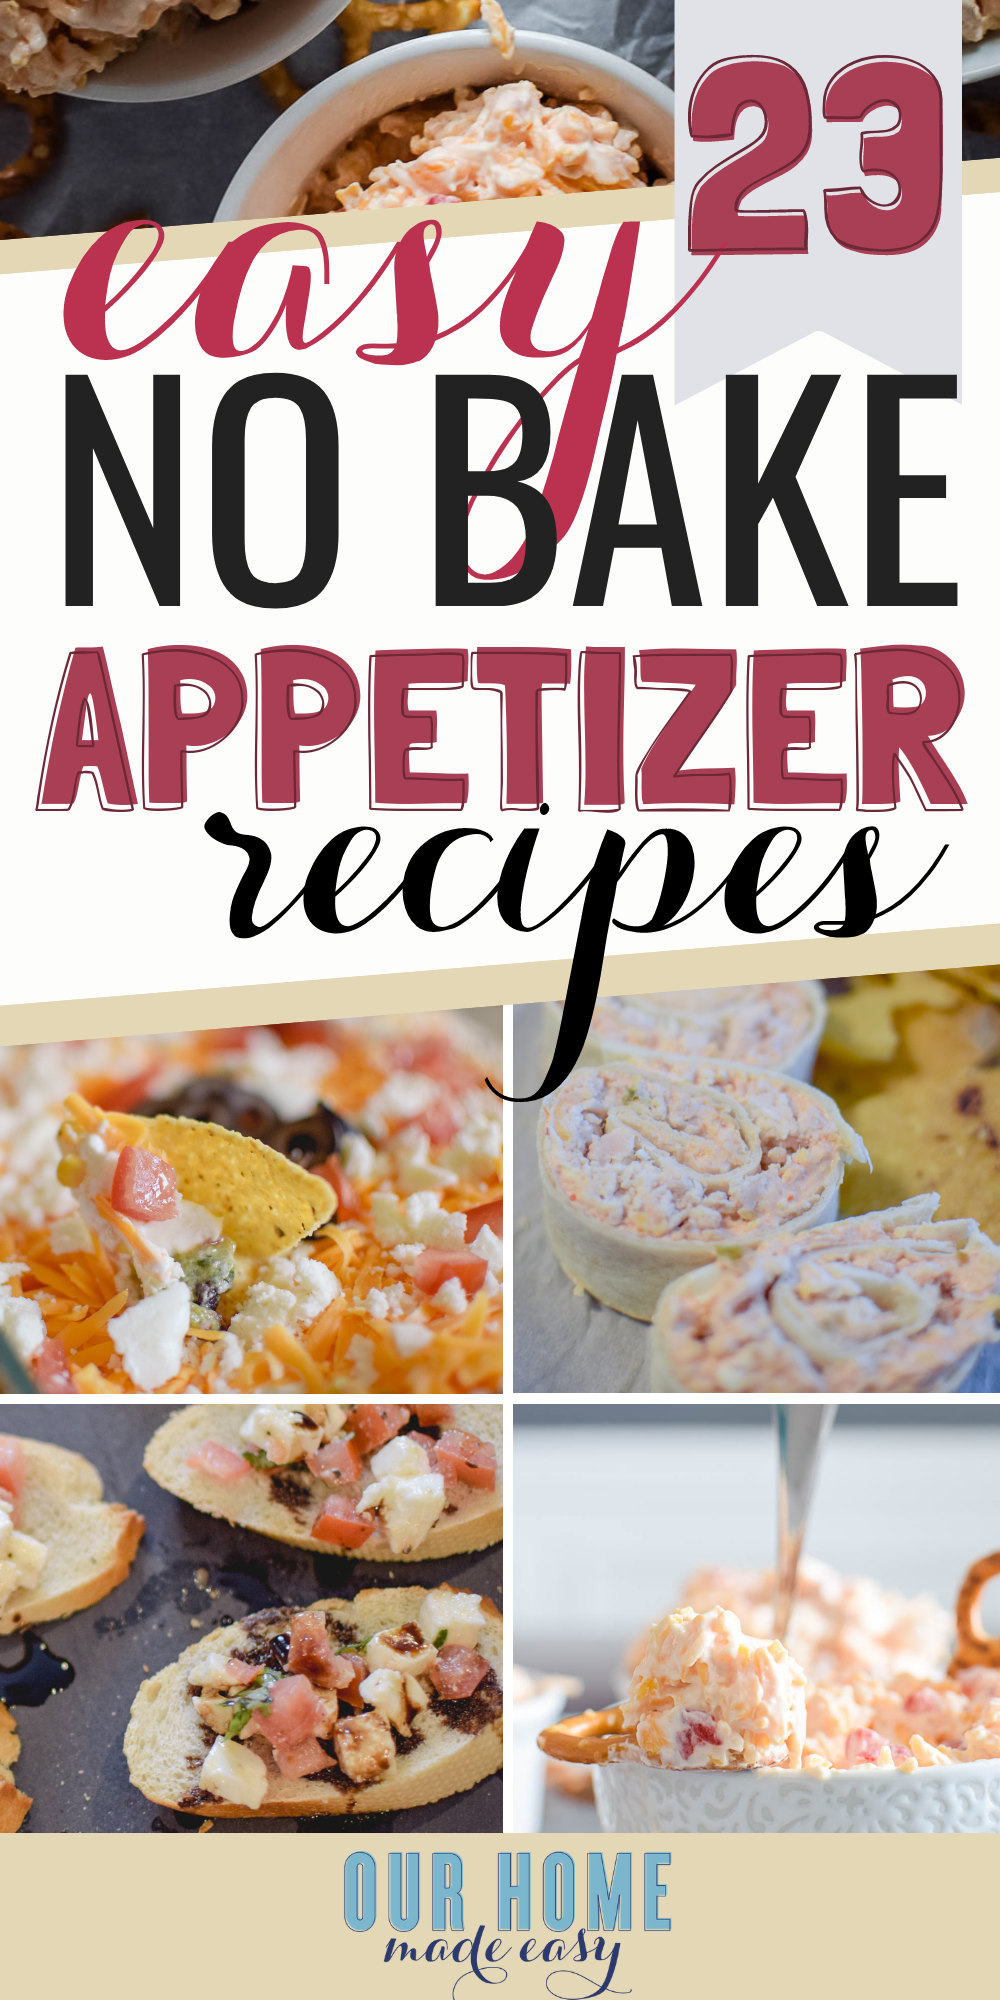 You've got to try some of these super easy no bake appetizers at your next summer party! From savory to sweet, there's something for everyone